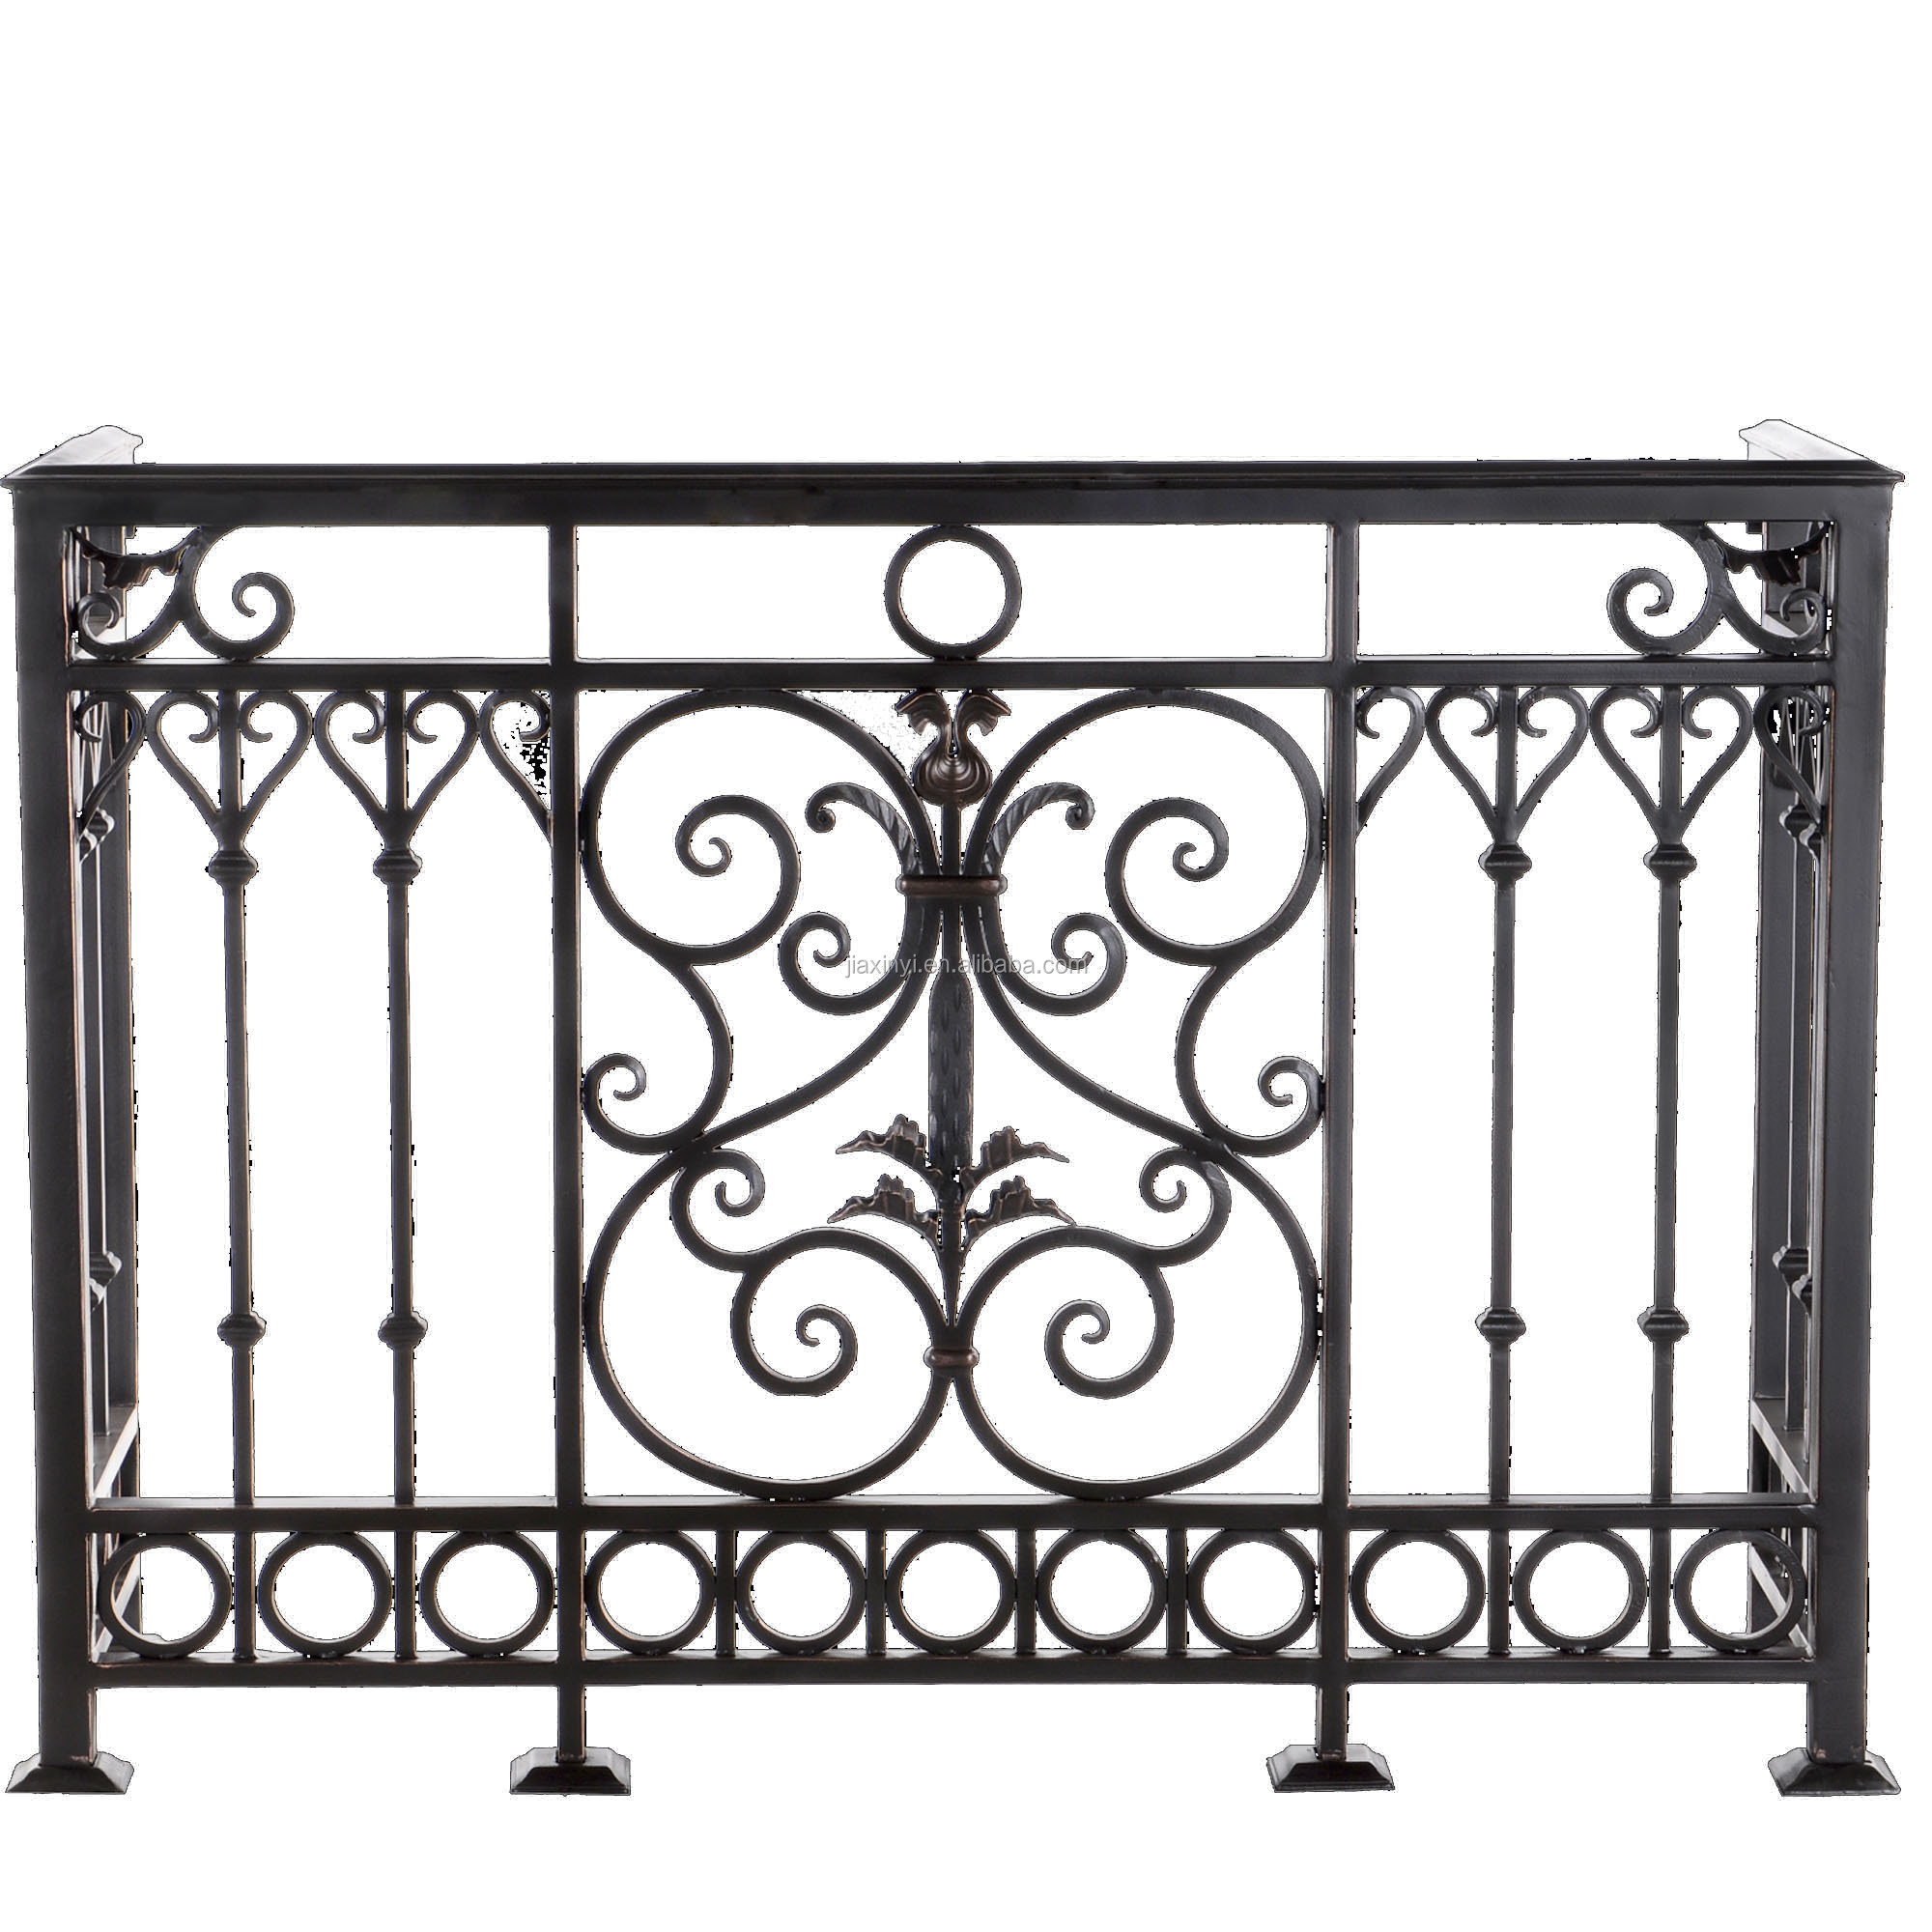 Fancy Wrought Iron Balcony Railing Designs For Mexican ...